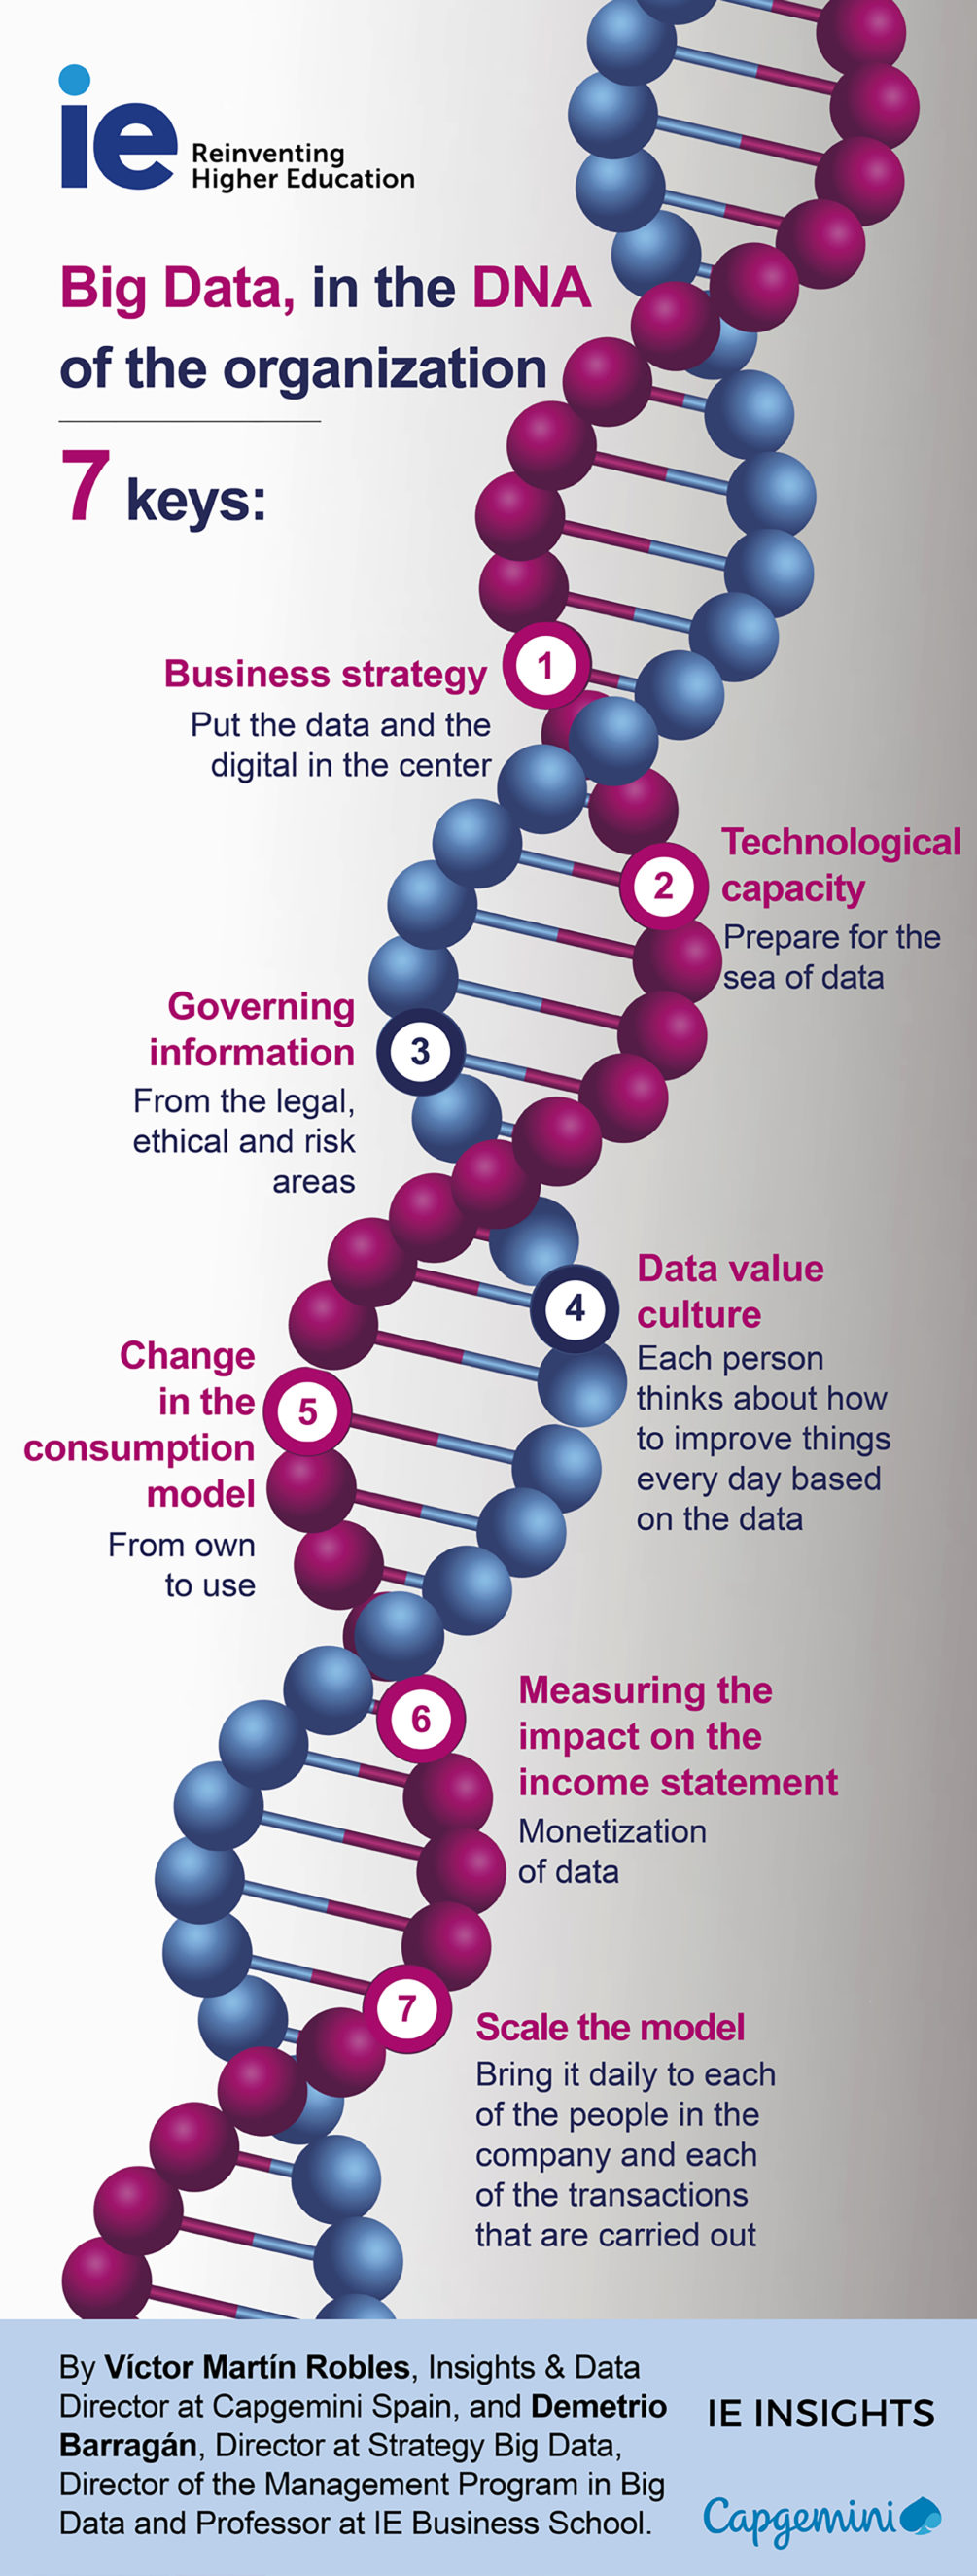 Big Data, in the DNA of the organization